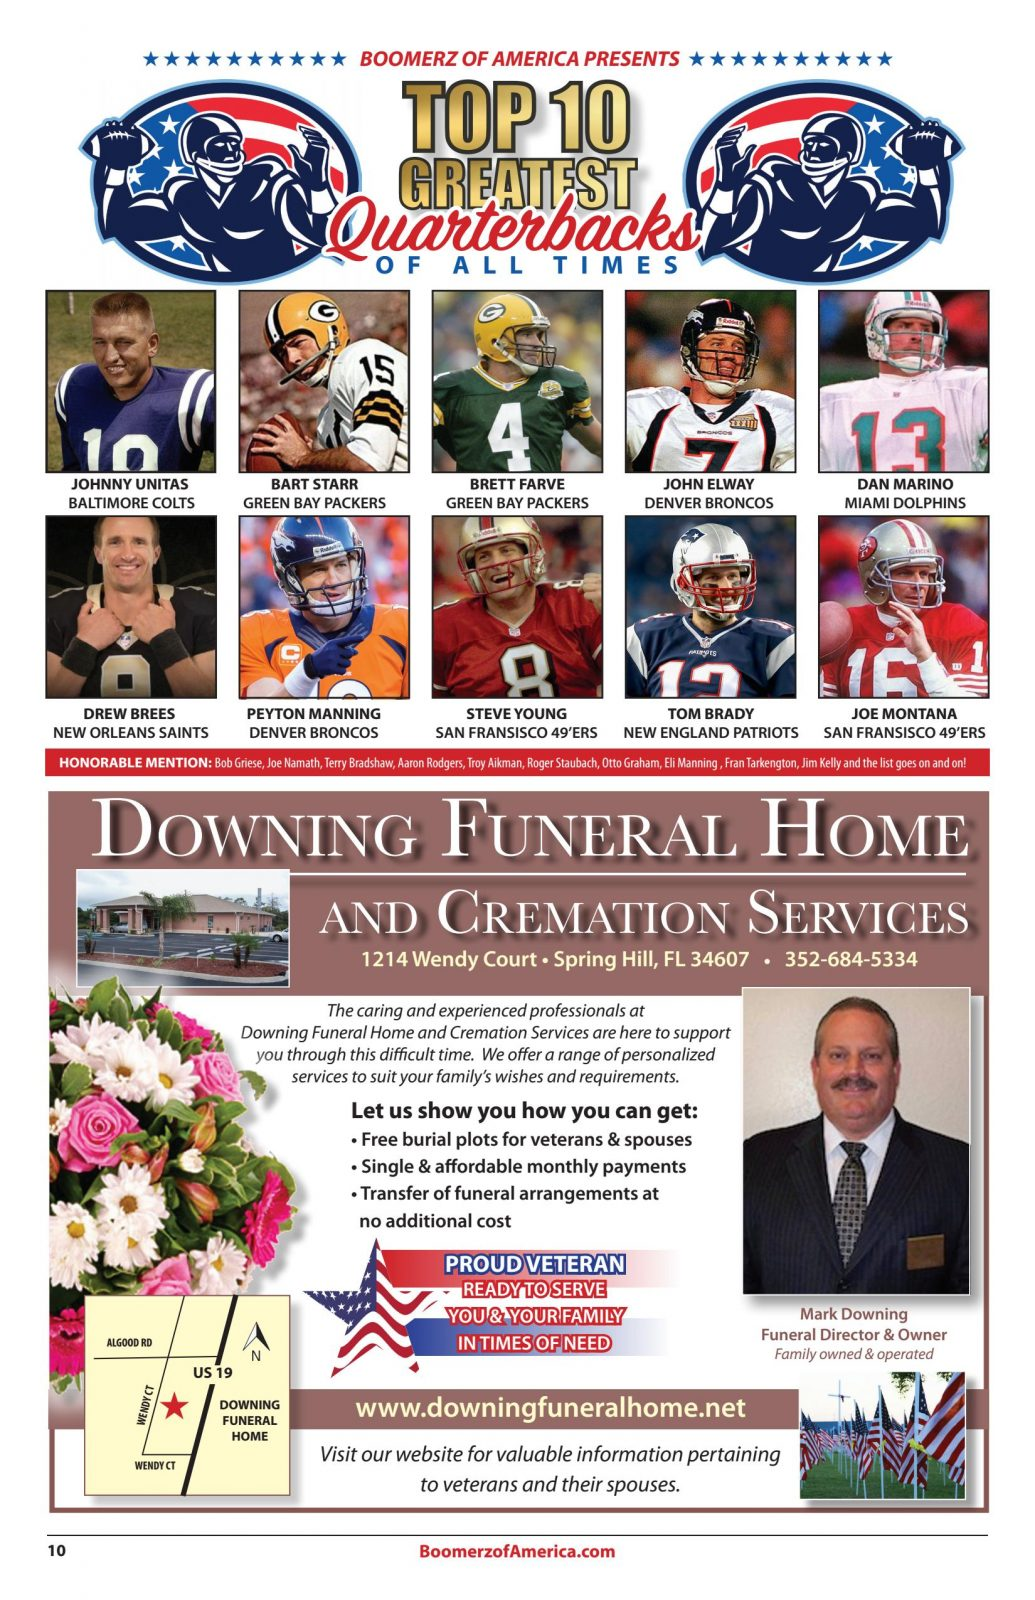 Boomerz August 2019 Top-10 Greatest Quarterbacks Downing Funeral Home